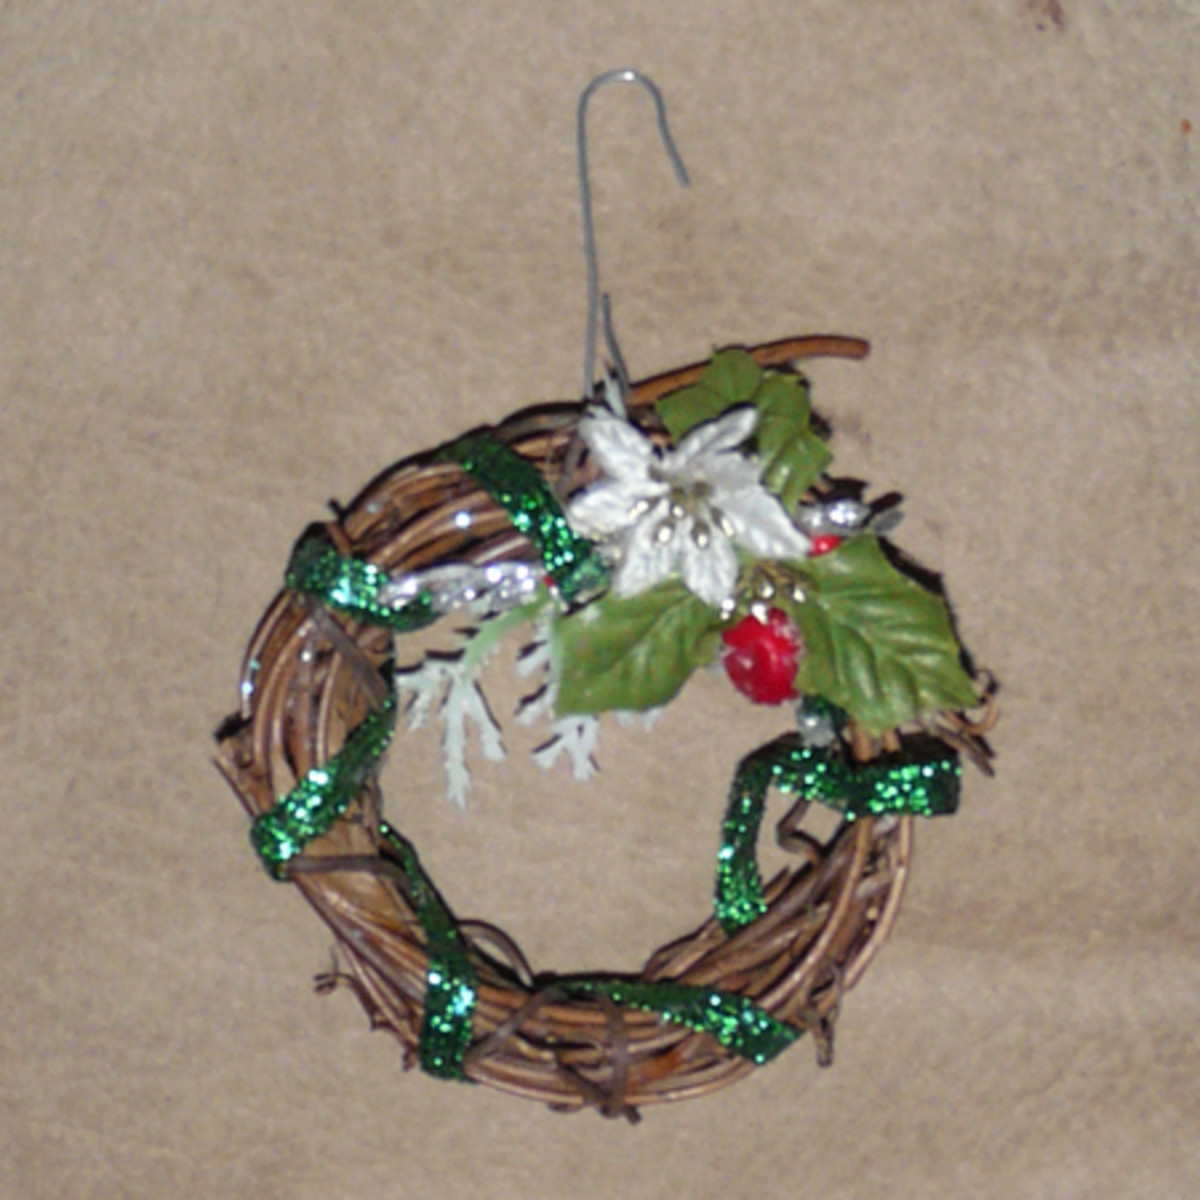 Mini Wreath Ornament with Poinsettia